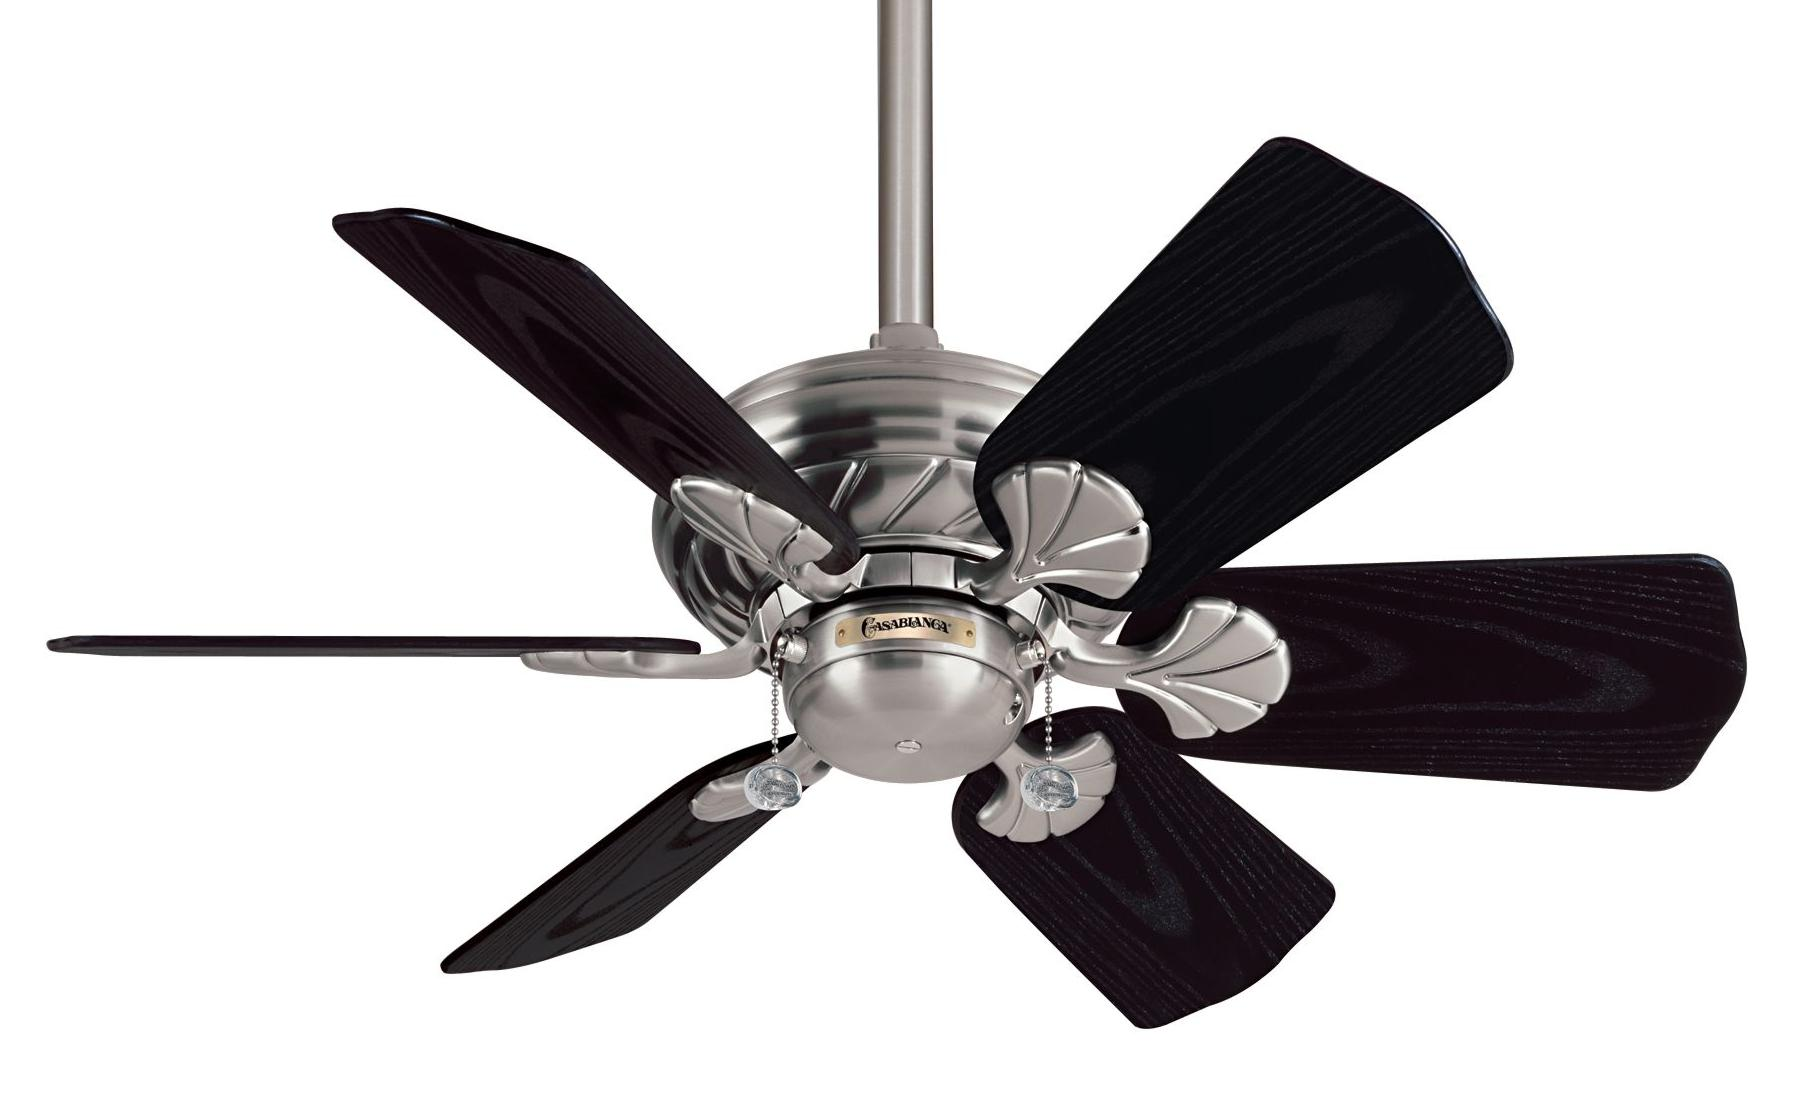 wonderful Casablanca Ceiling Fans n six black blade slinger for ceiling decor ideas